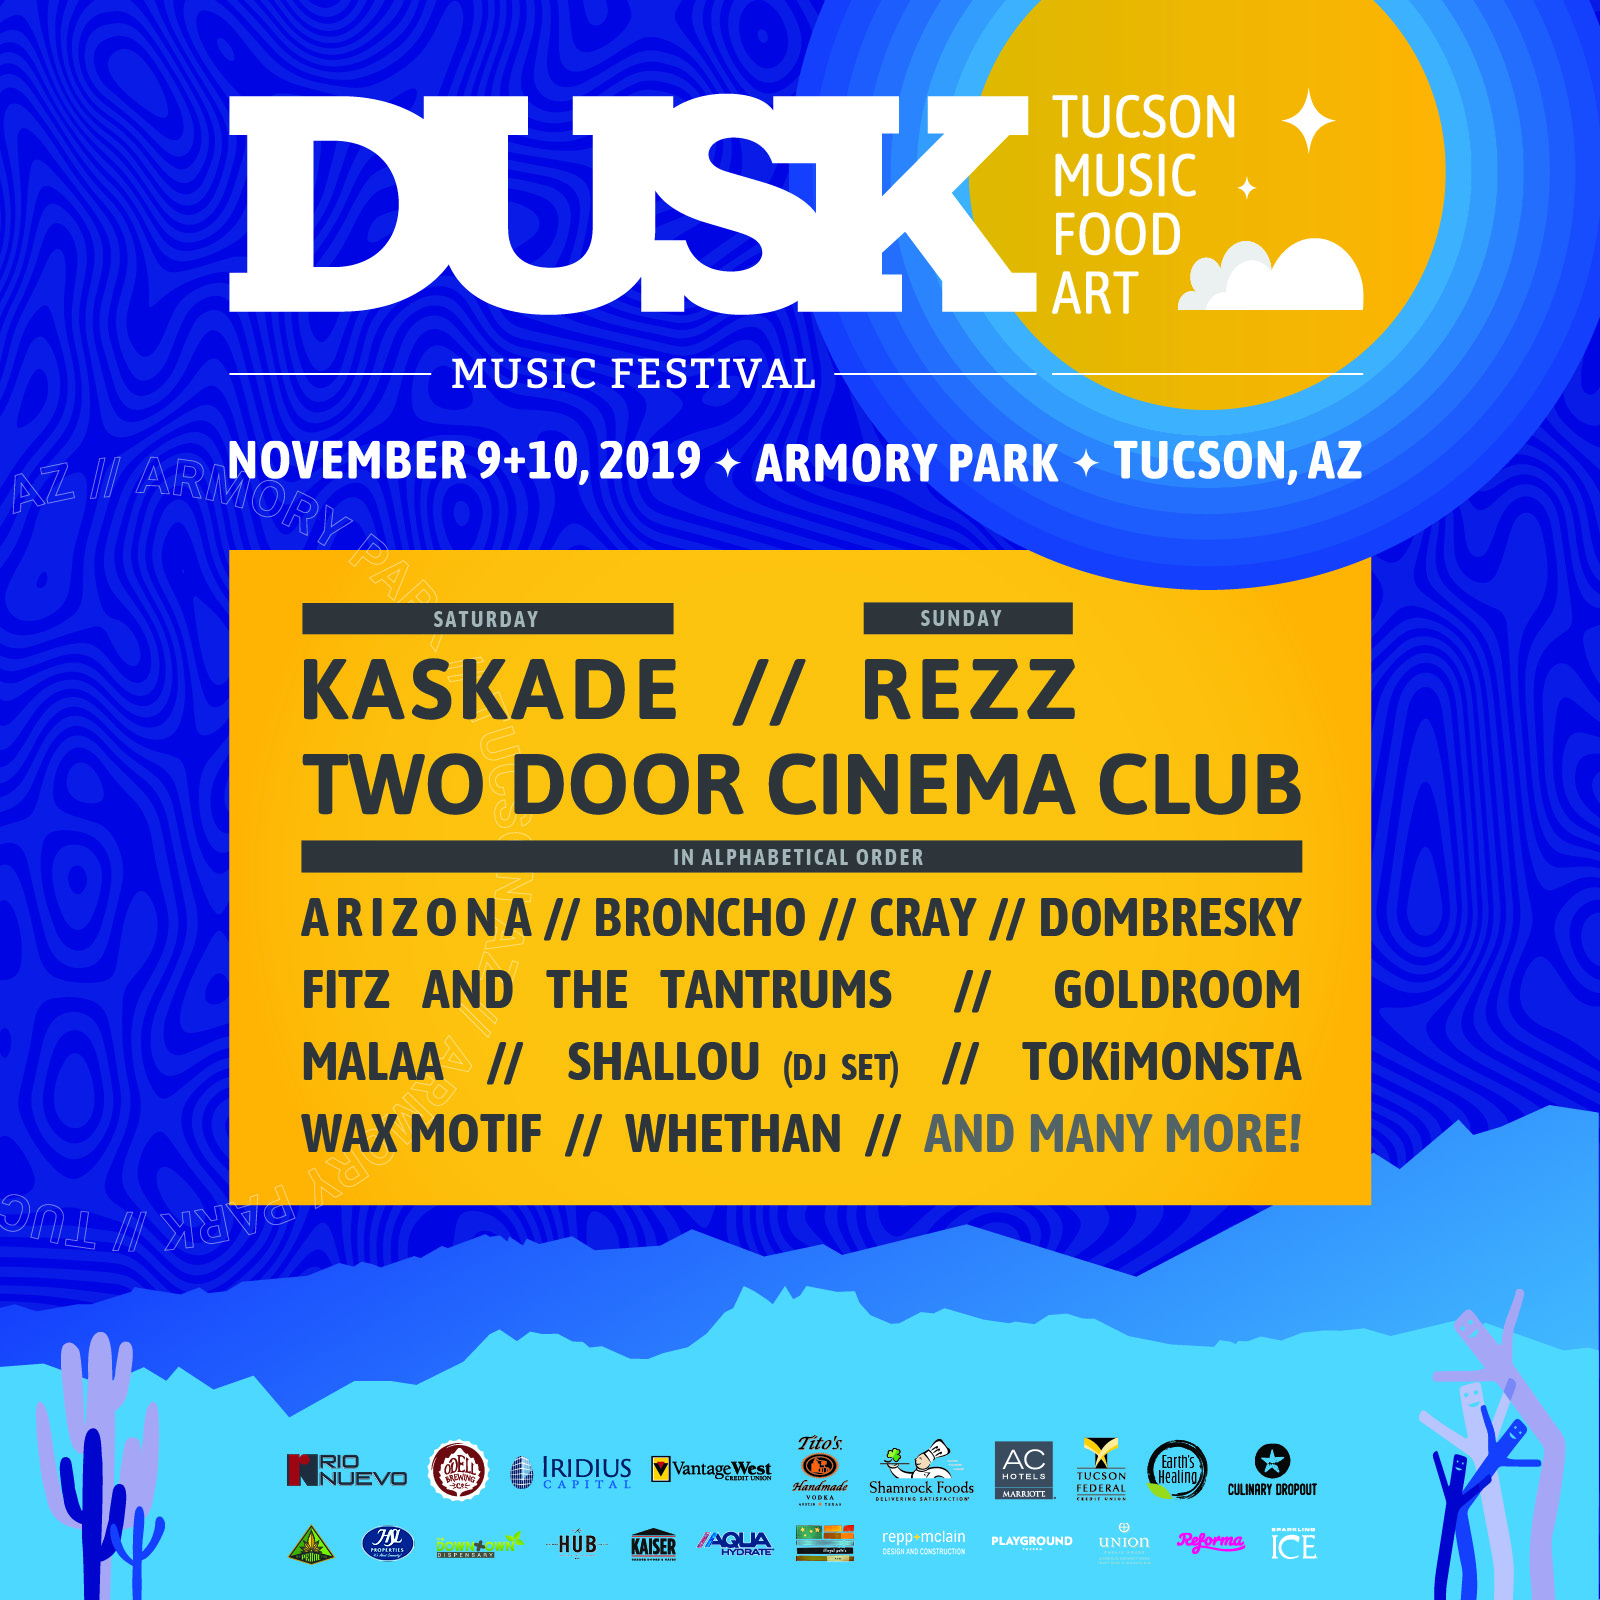 Buy Tickets to Dusk Music Festival 2019 in Tucson on Nov 09